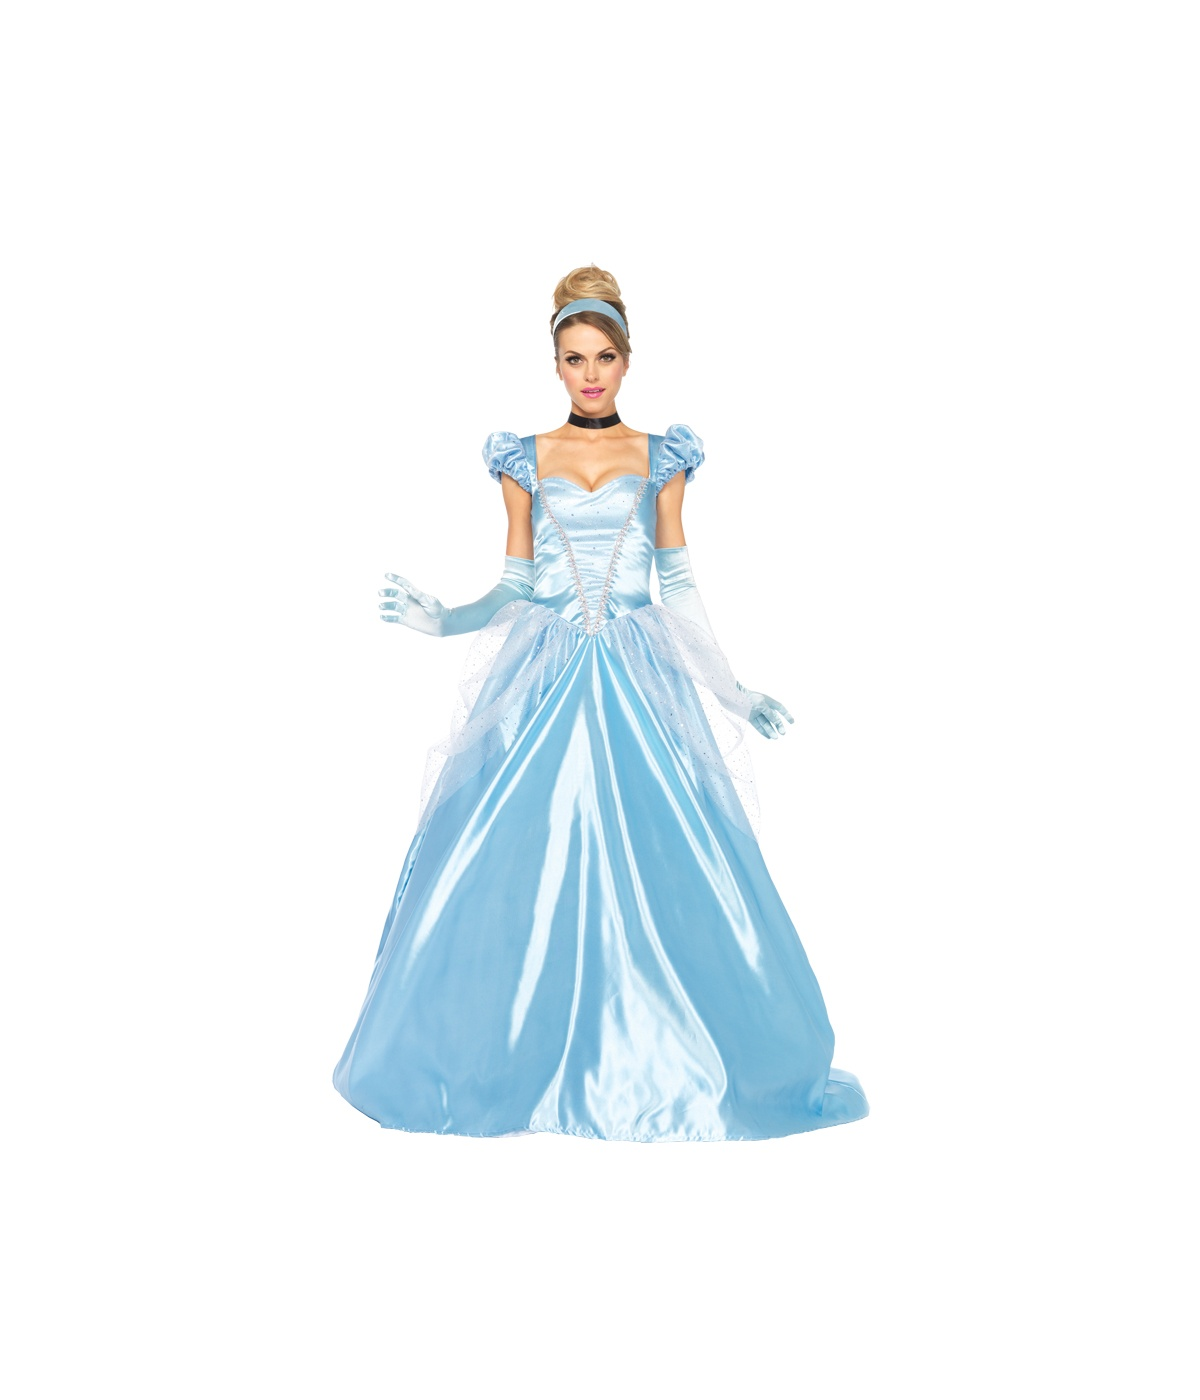 Out of the Movie Princess Cinderella Womens Costume  sc 1 st  Wonder Costumes & Princess Costumes - Fairy Tale Princess Dresses u0026 Gowns